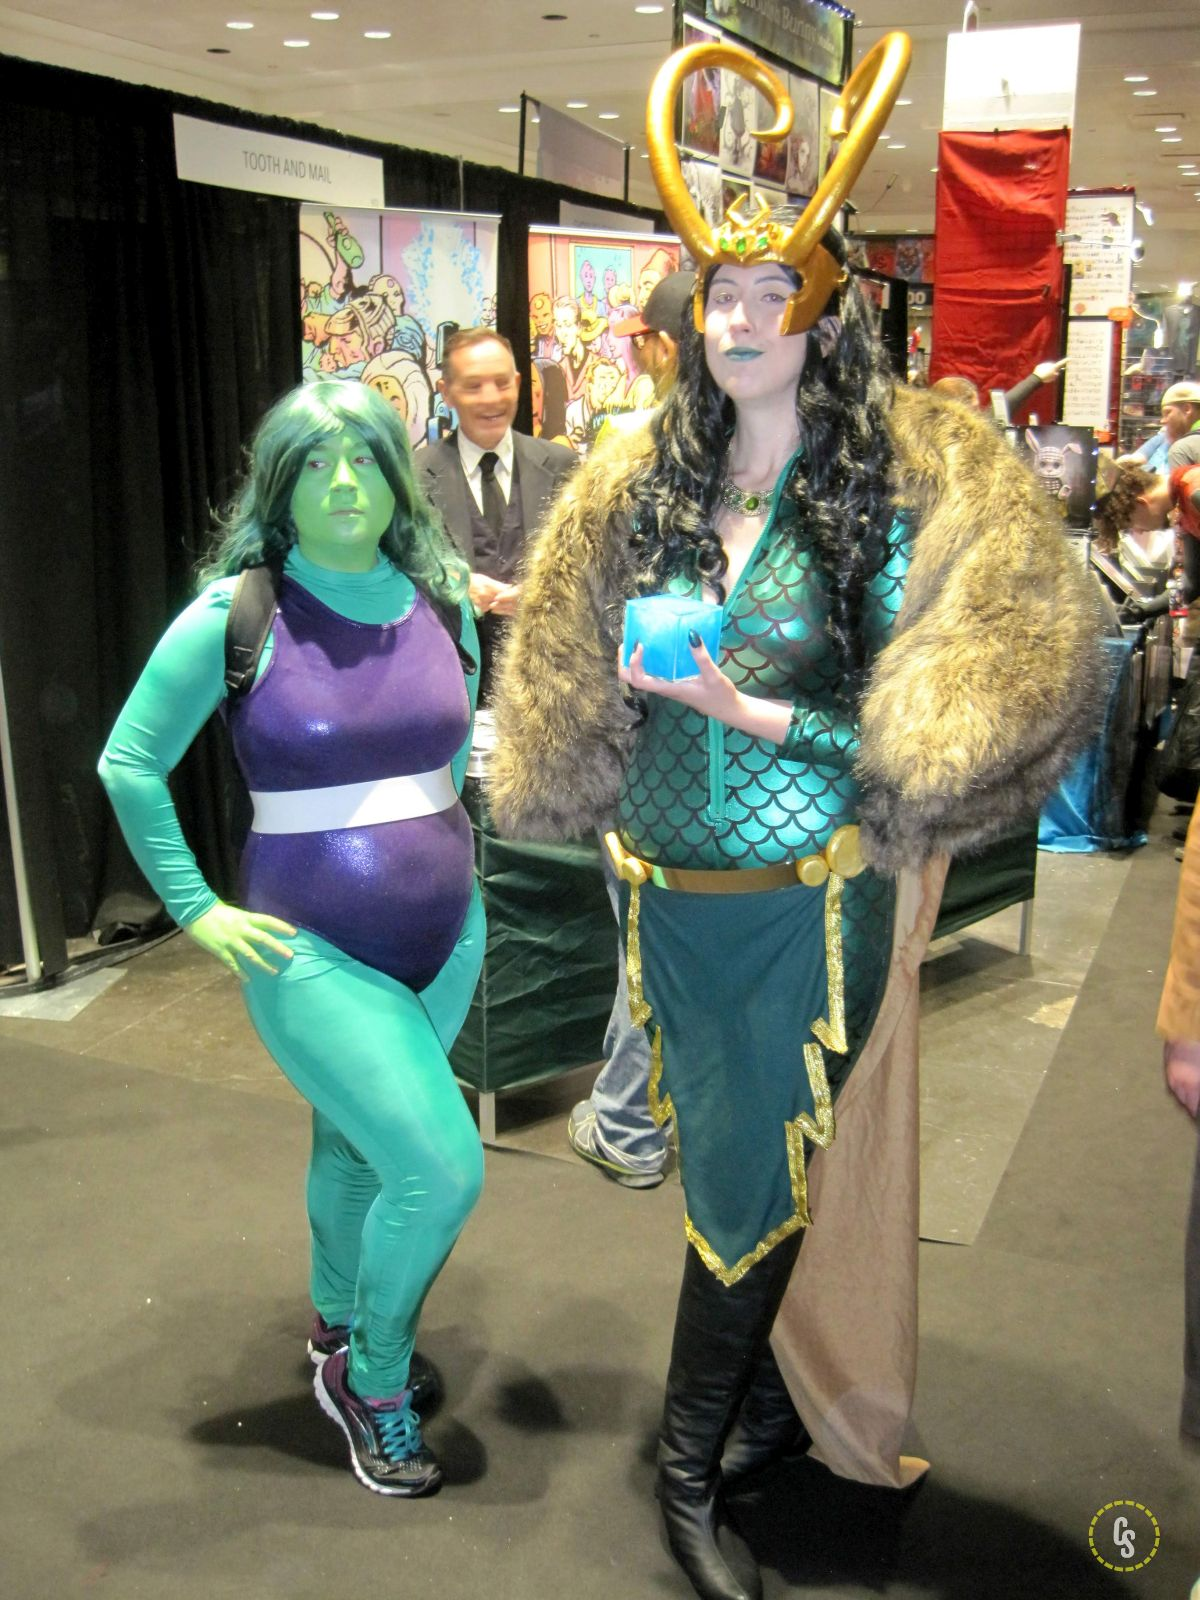 nycc182_036